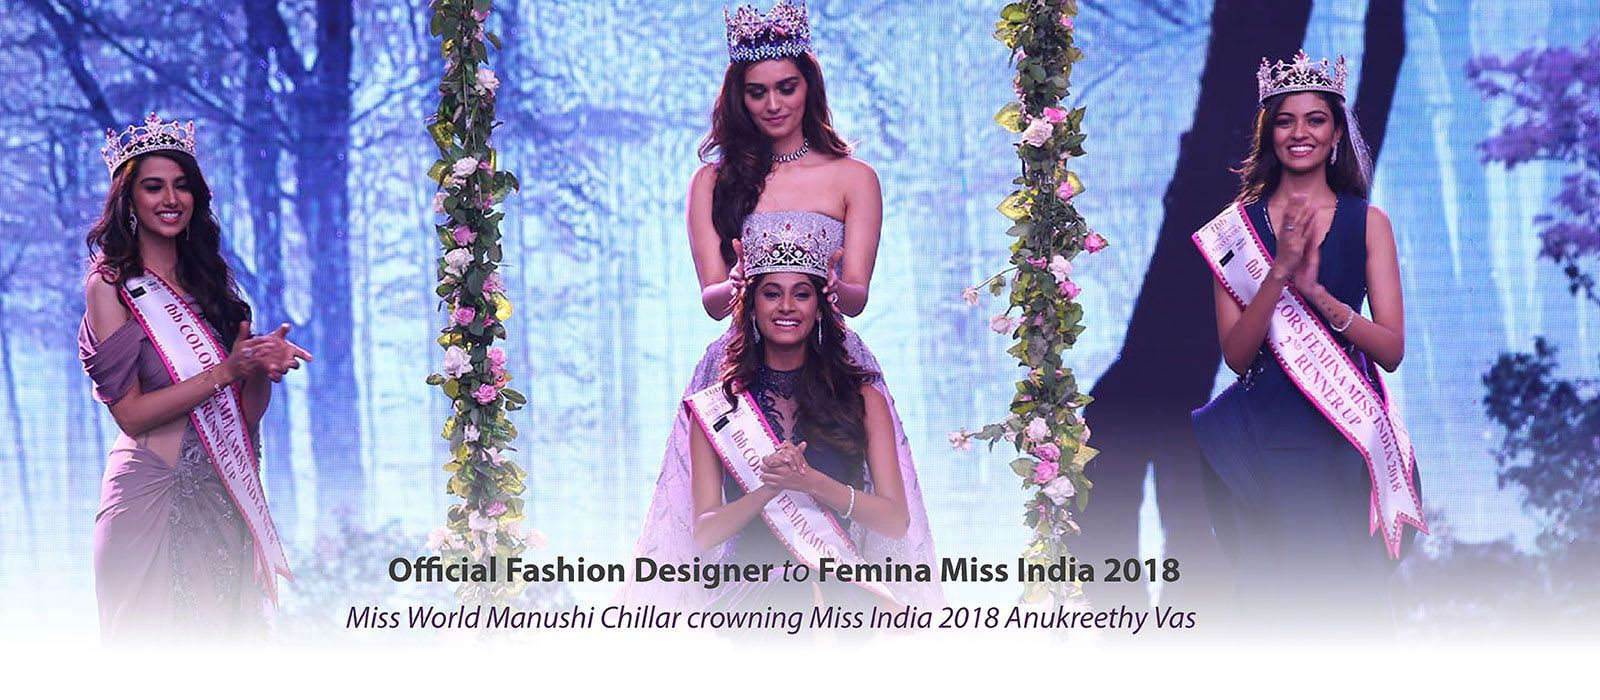 Miss World Manushi Chillar crowning Miss India 2018